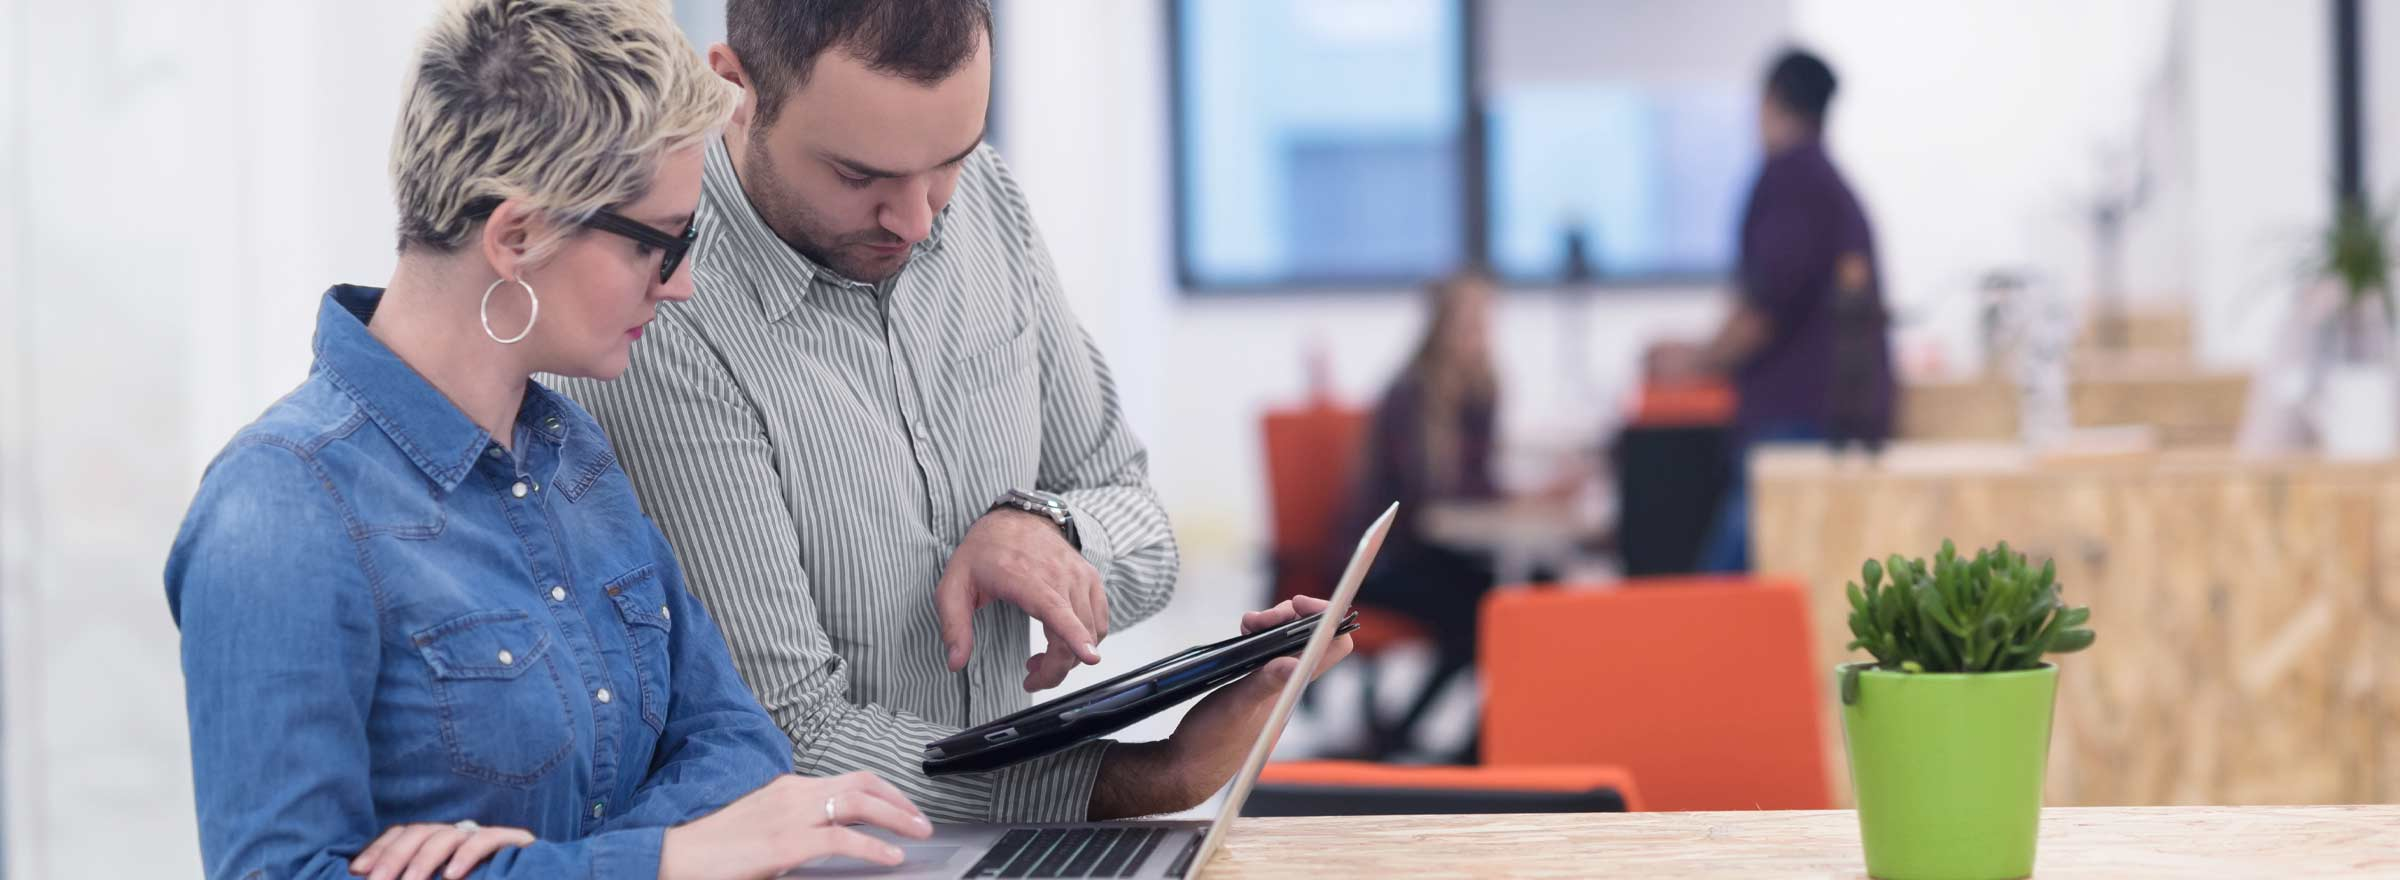 woman seated in front of laptop; man showing her something on a tablet